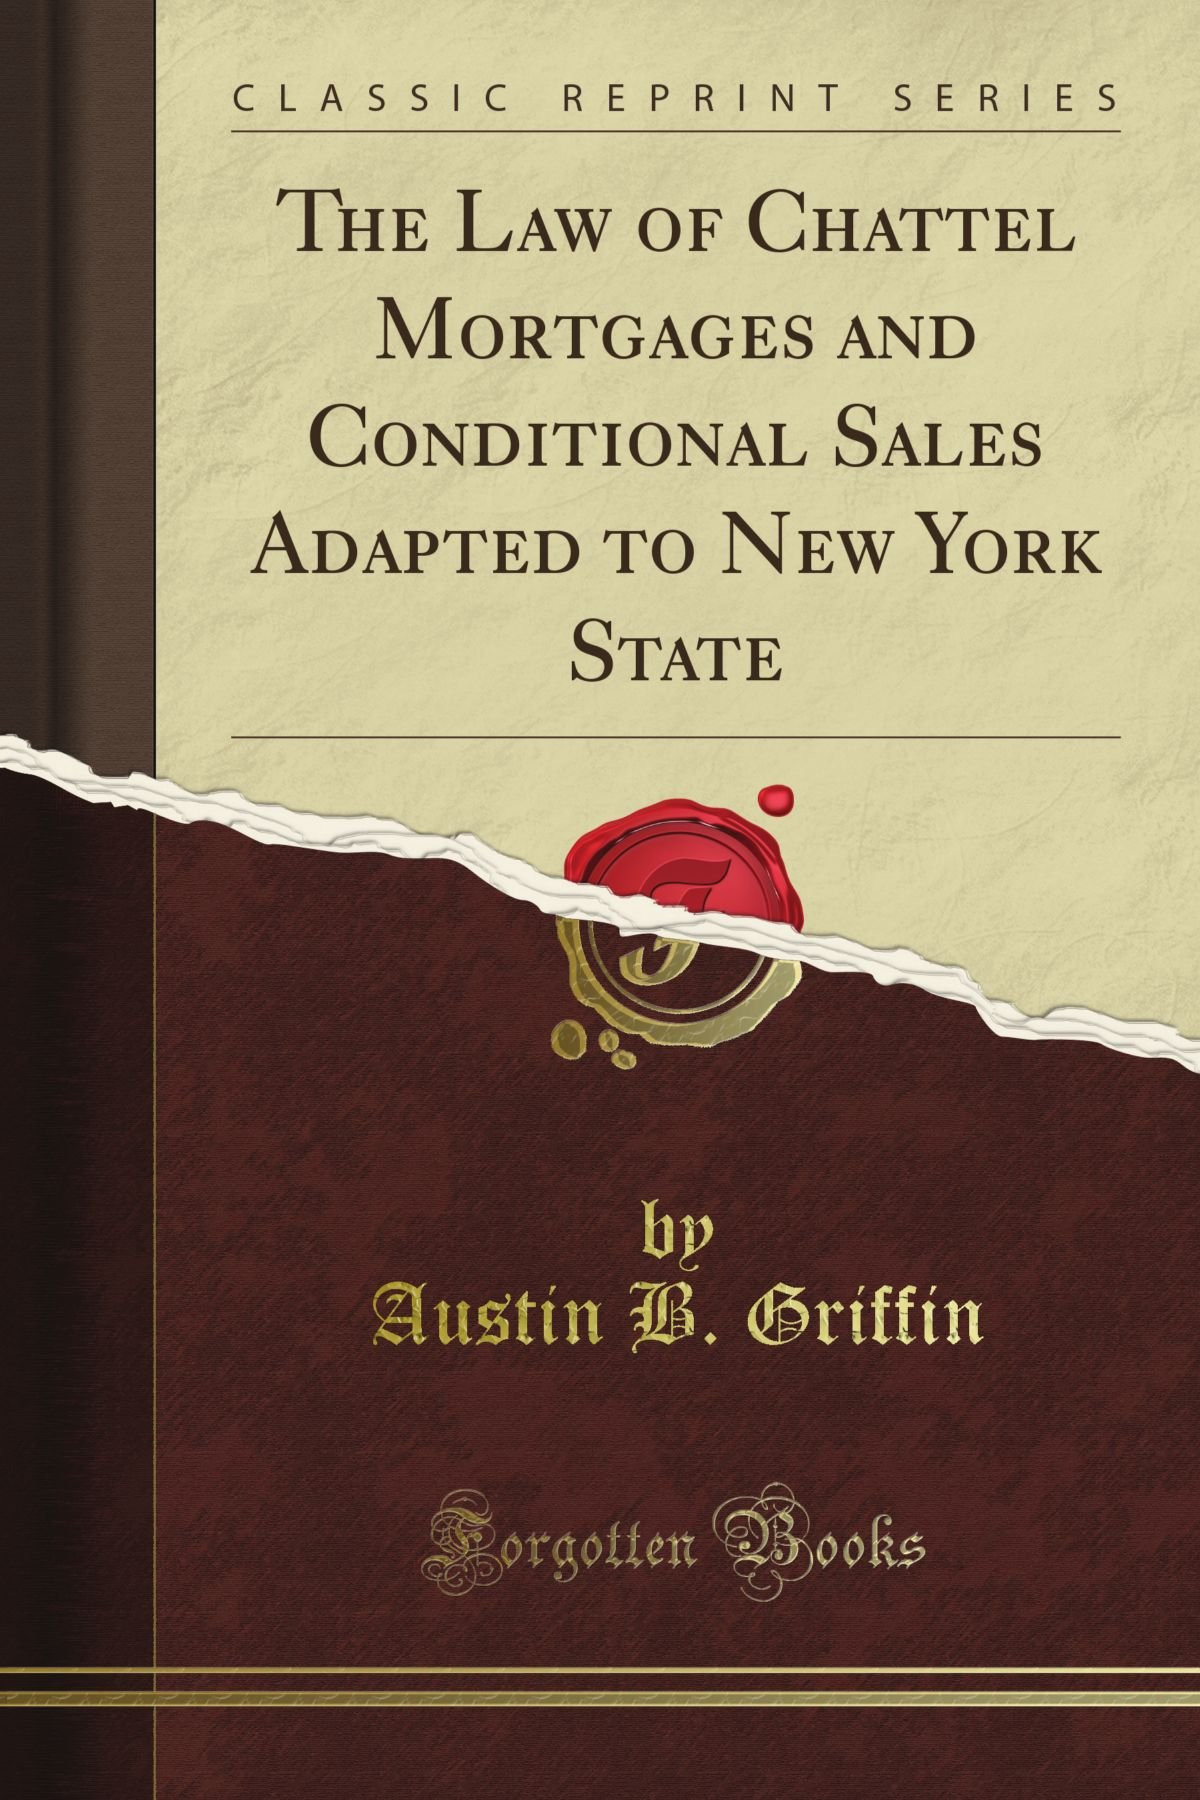 Download The Law of Chattel Mortgages and Conditional Sales Adapted to New York State (Classic Reprint) PDF